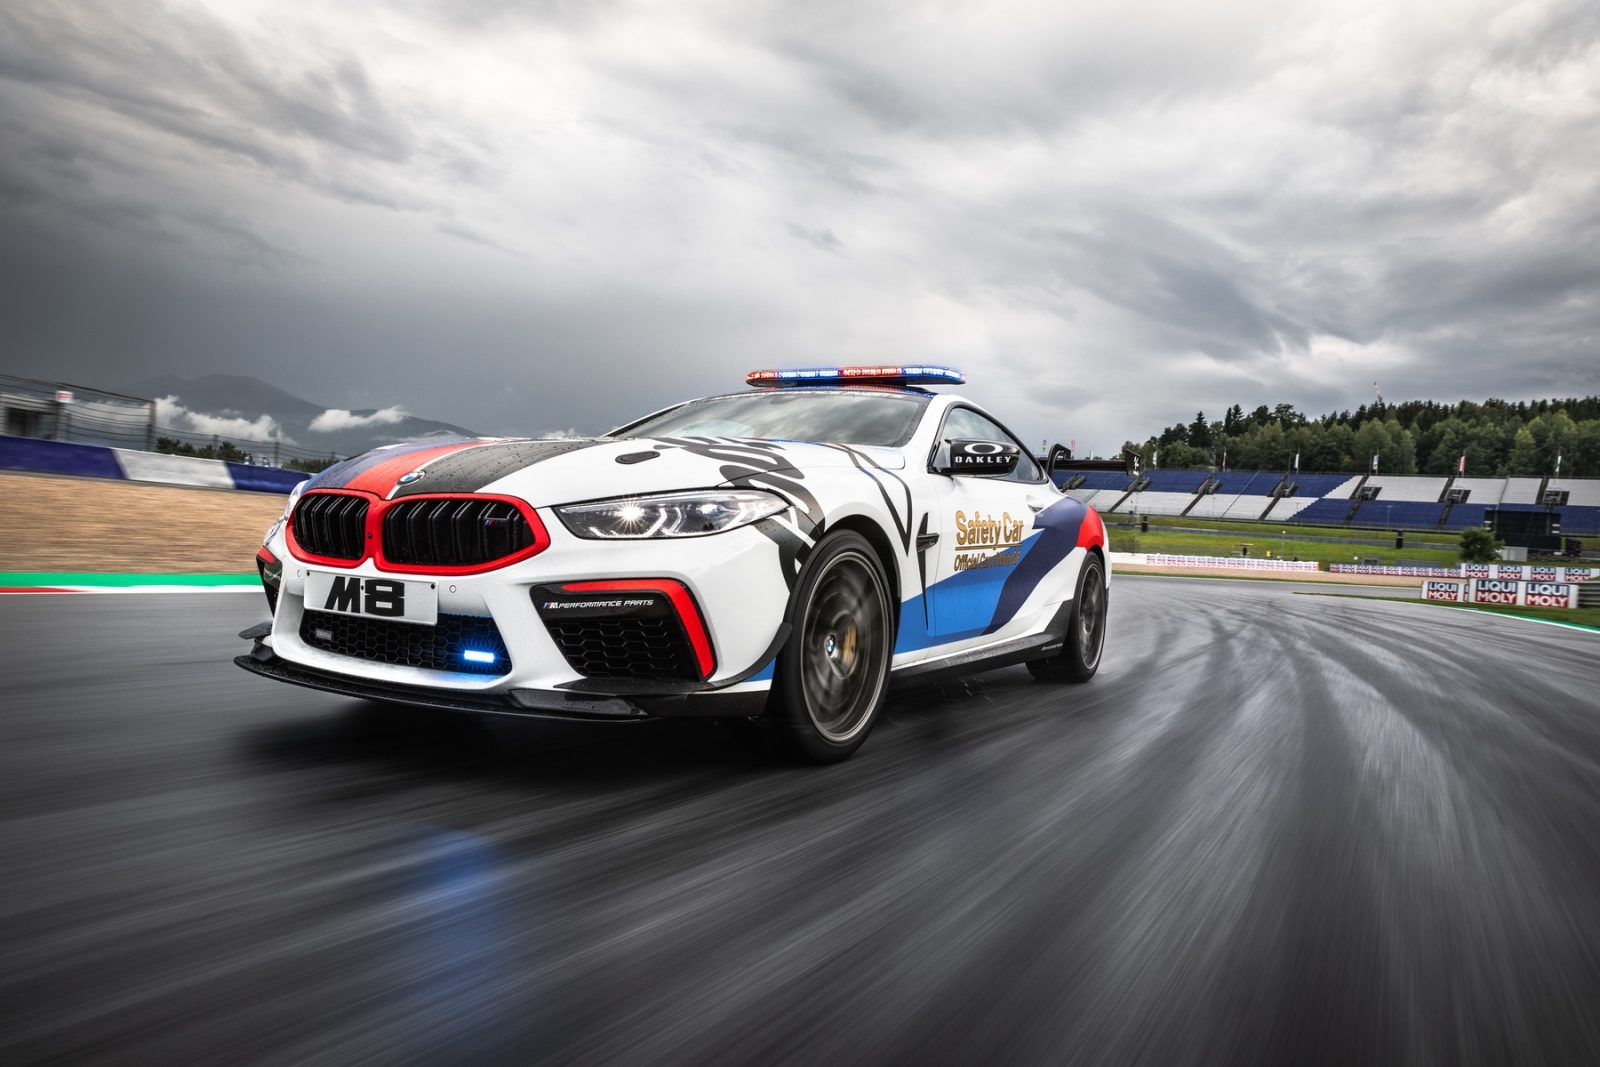 The BMW M8 MotoGP Safety Car